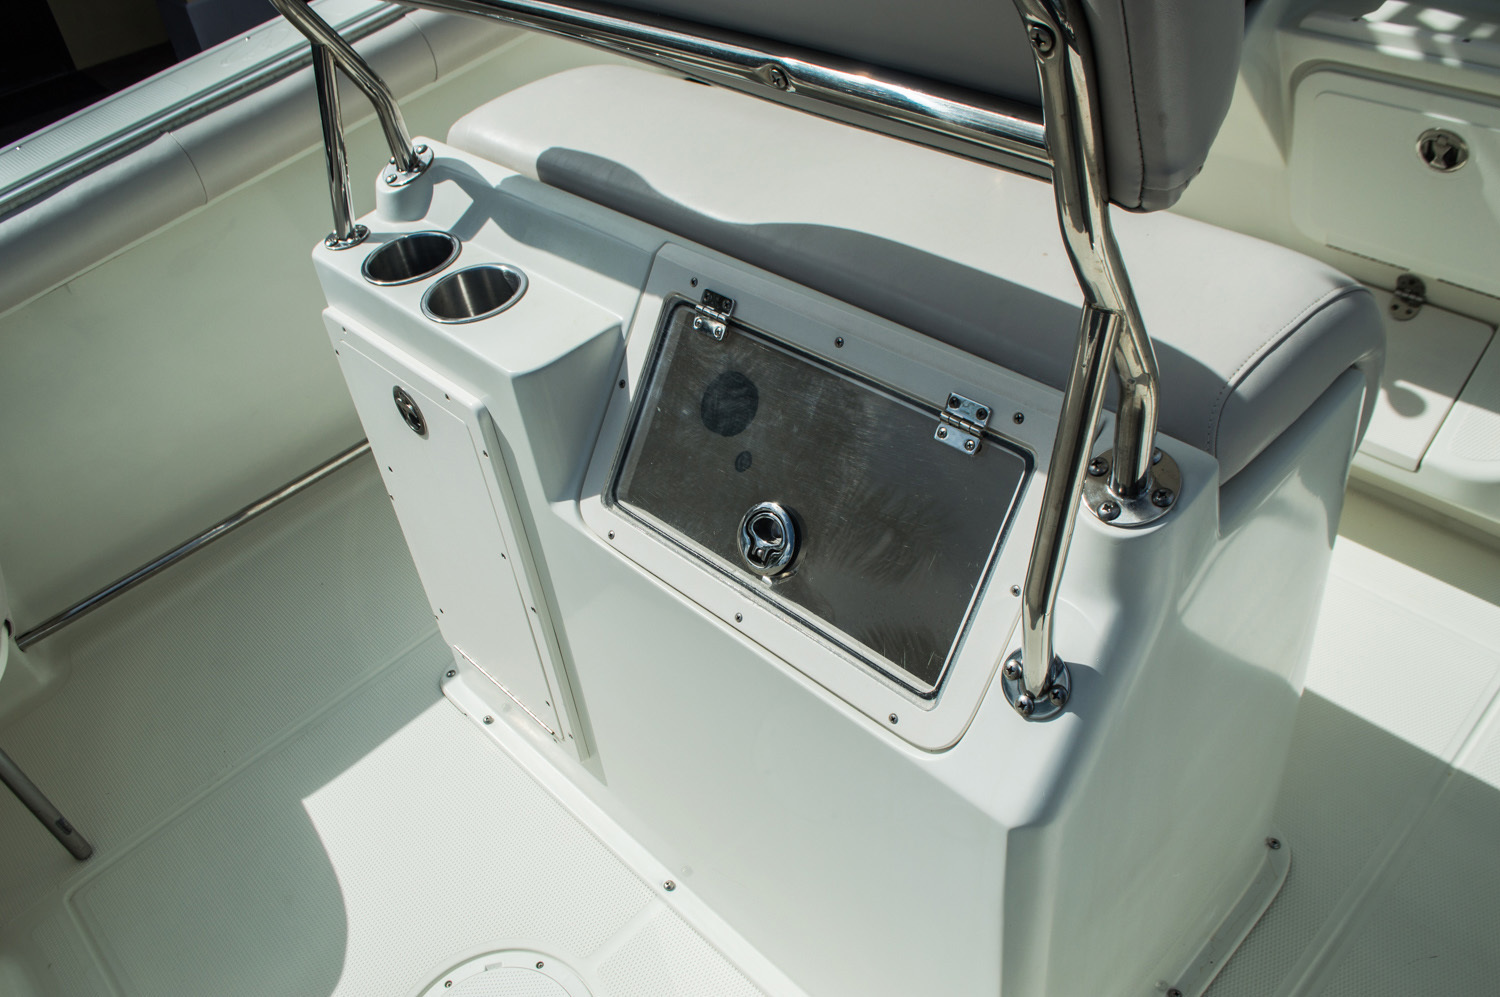 Thumbnail 51 for Used 2006 Sailfish 2360 CC Center Console boat for sale in West Palm Beach, FL